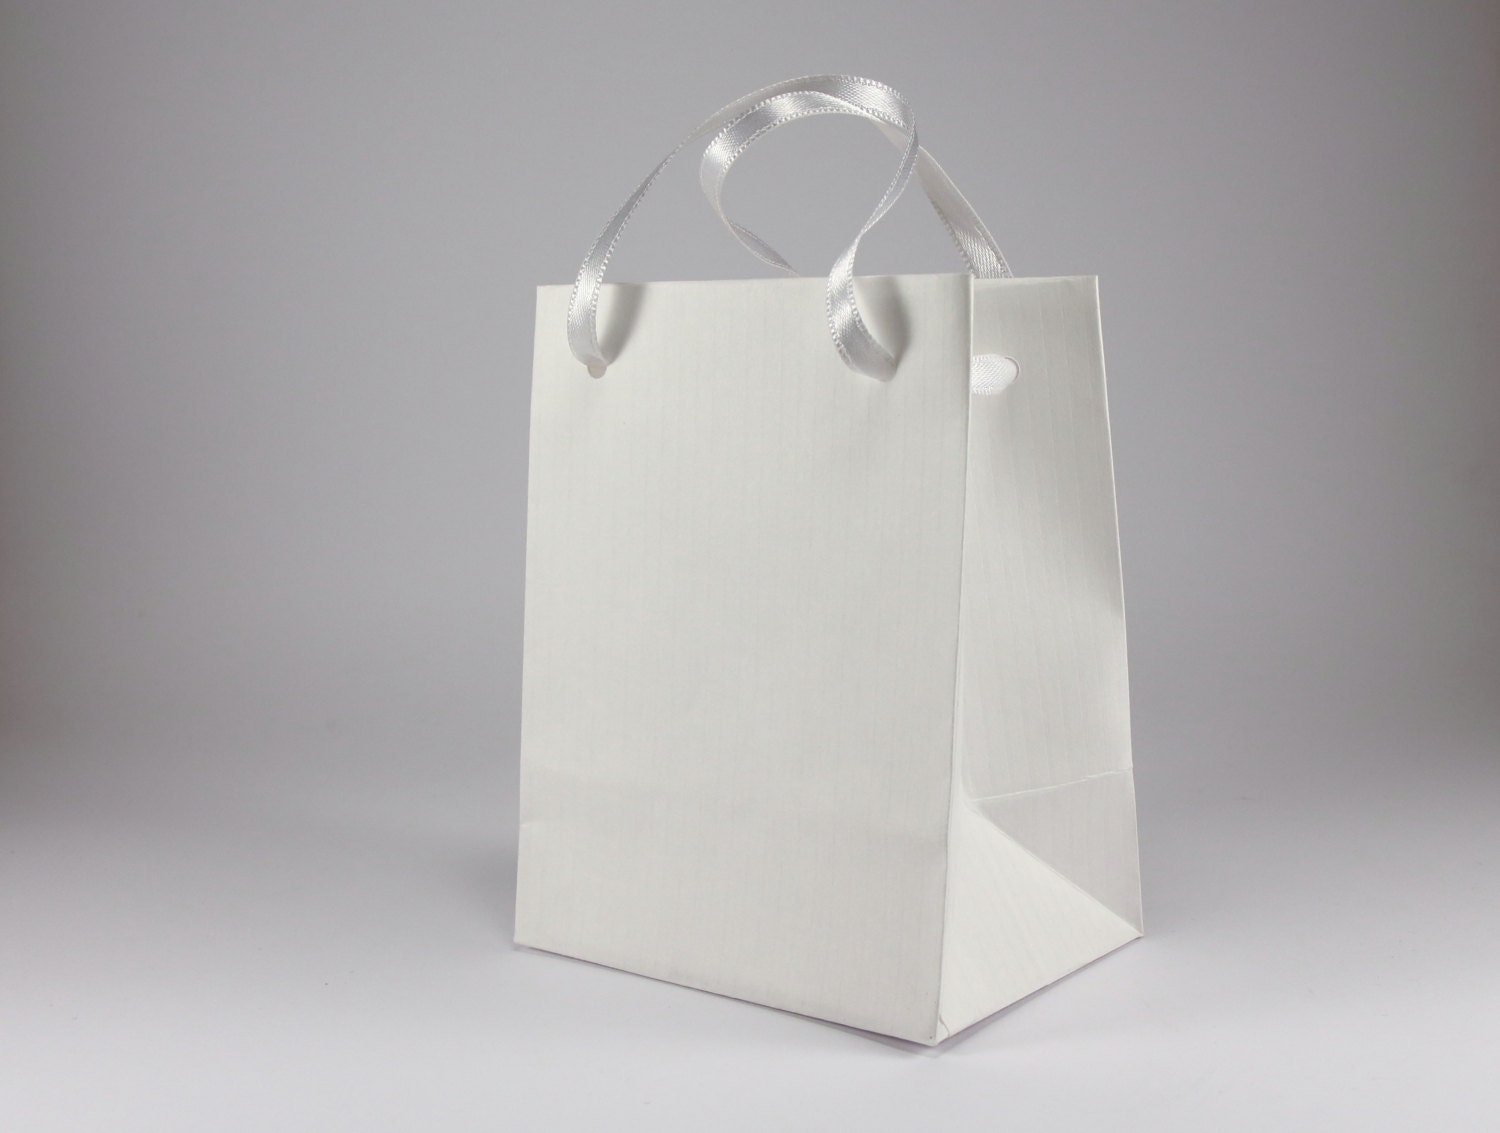 Small Wedding Gift Bags: 50 Extra Small WHITE Gift Bags Handmade Of White Ribbed